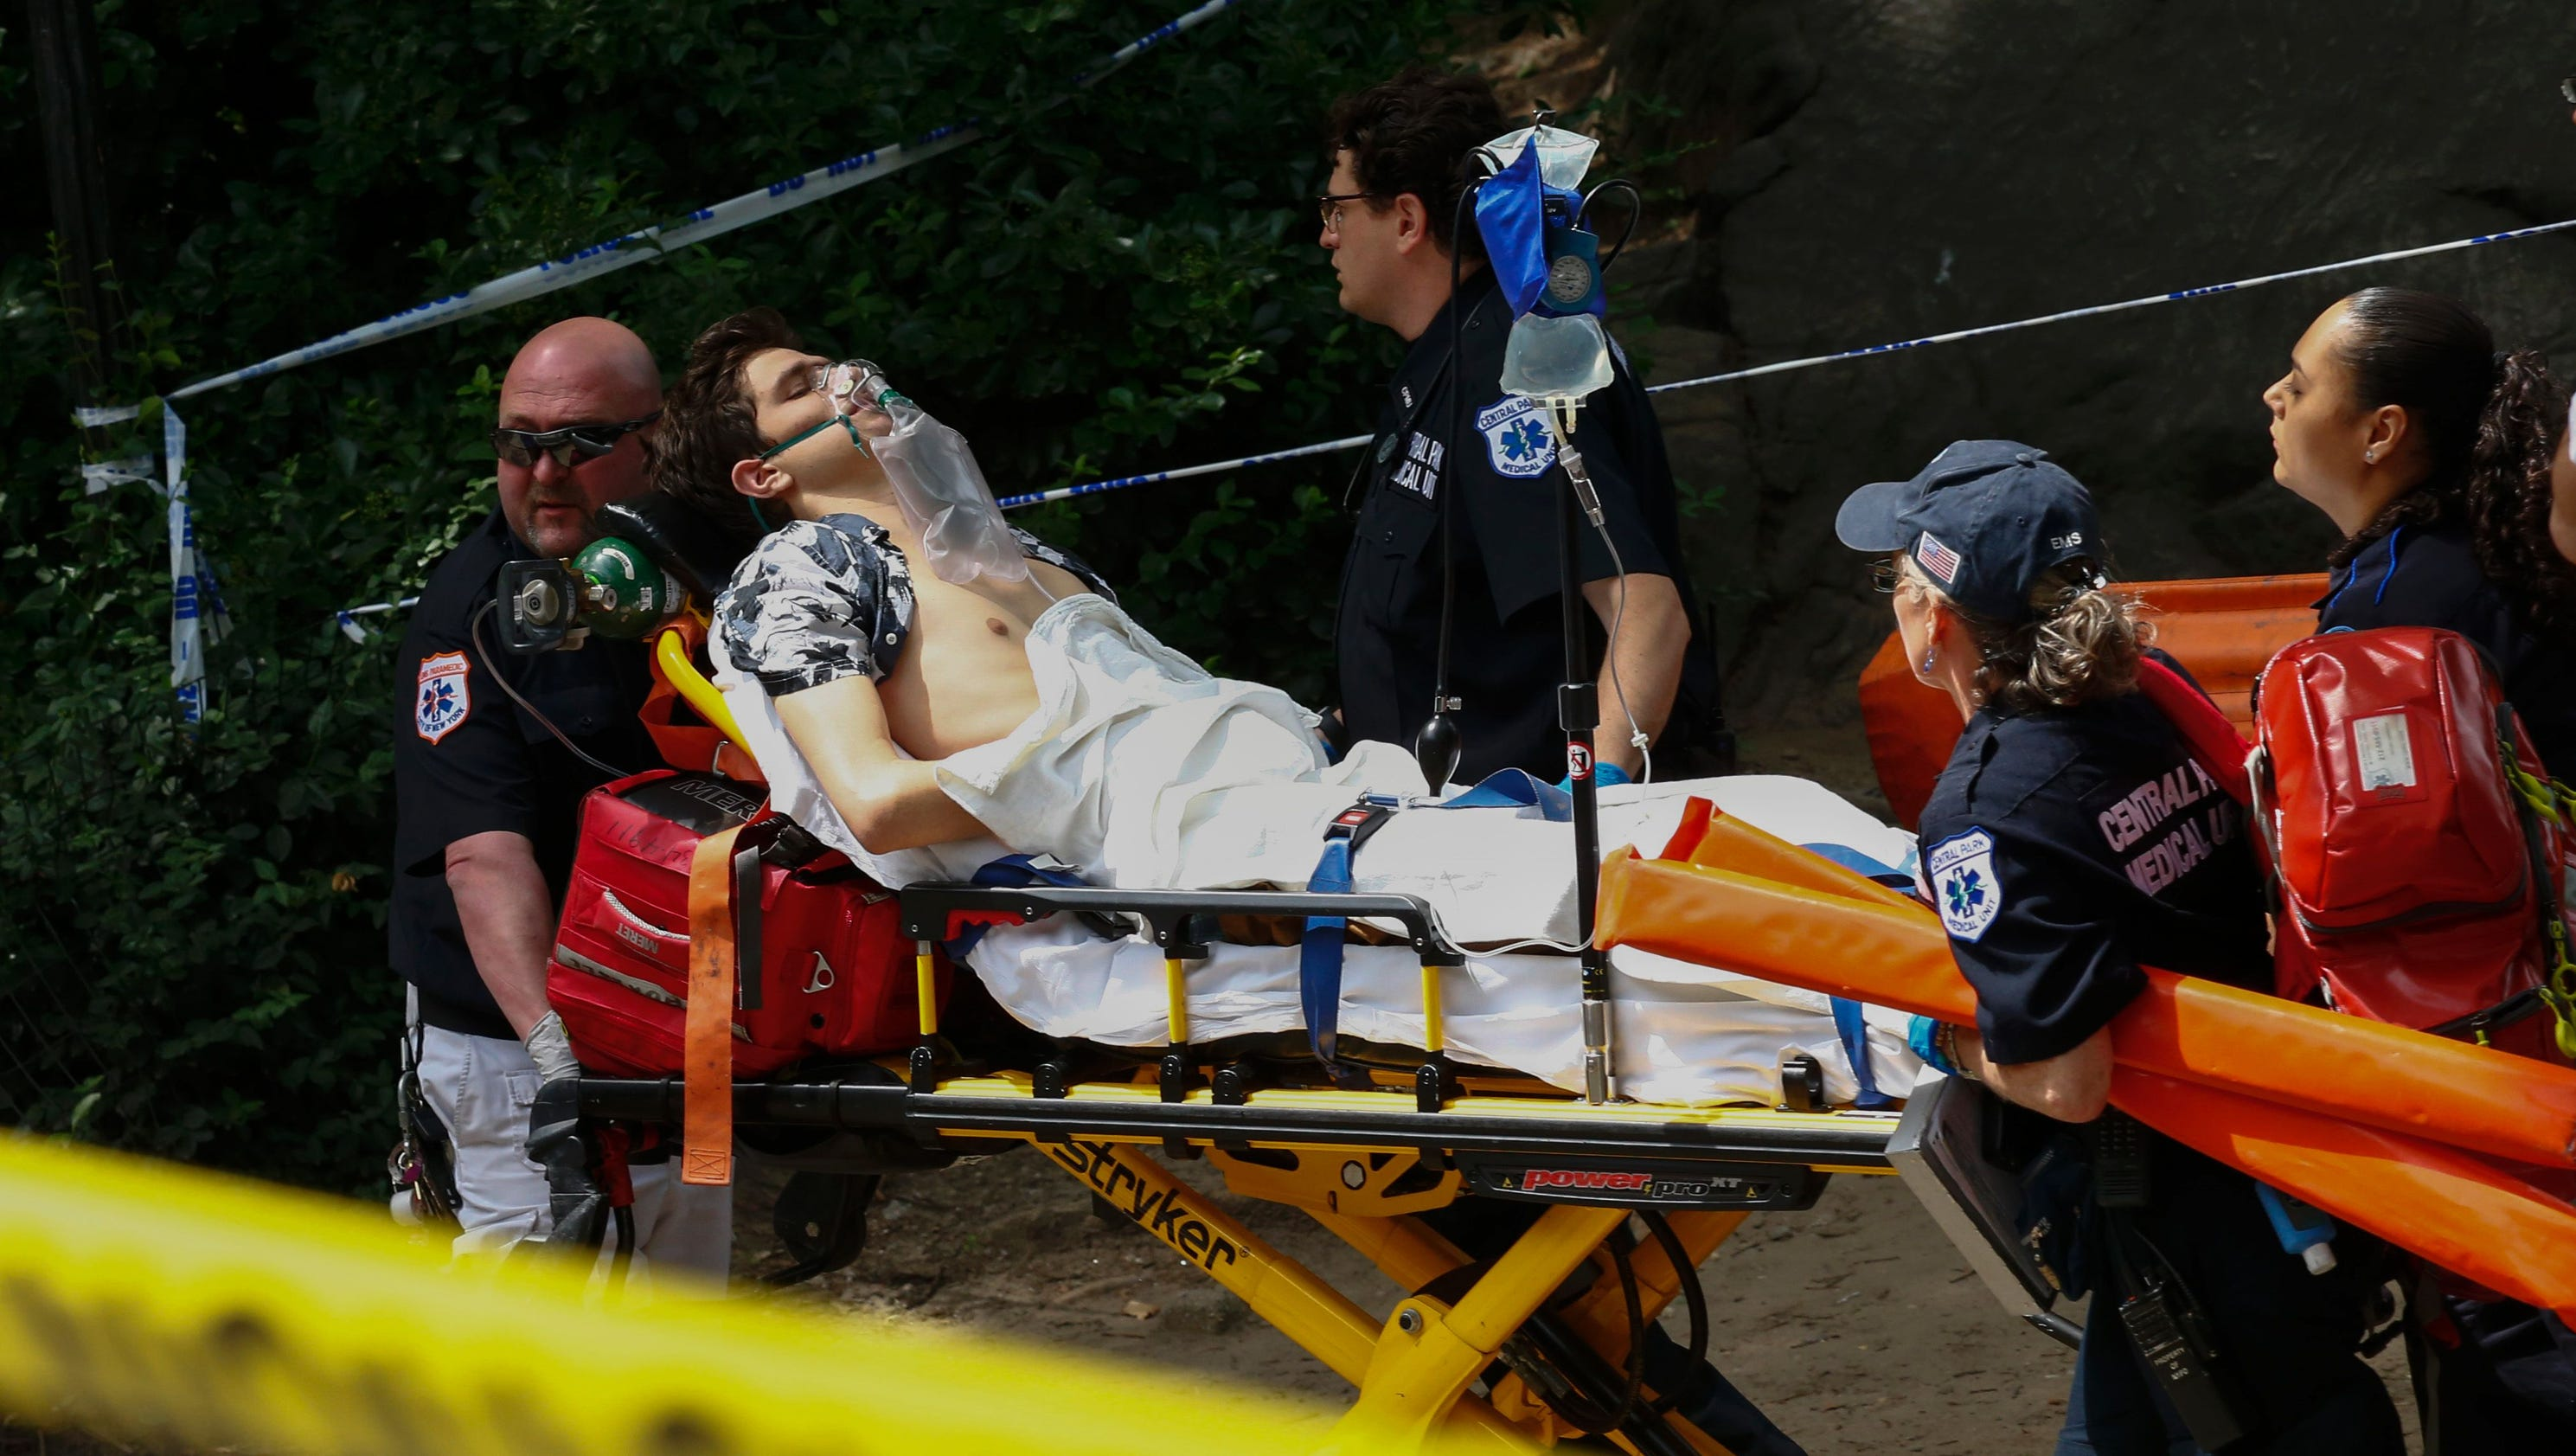 Reports: Explosive device injures man in New York's Central Park